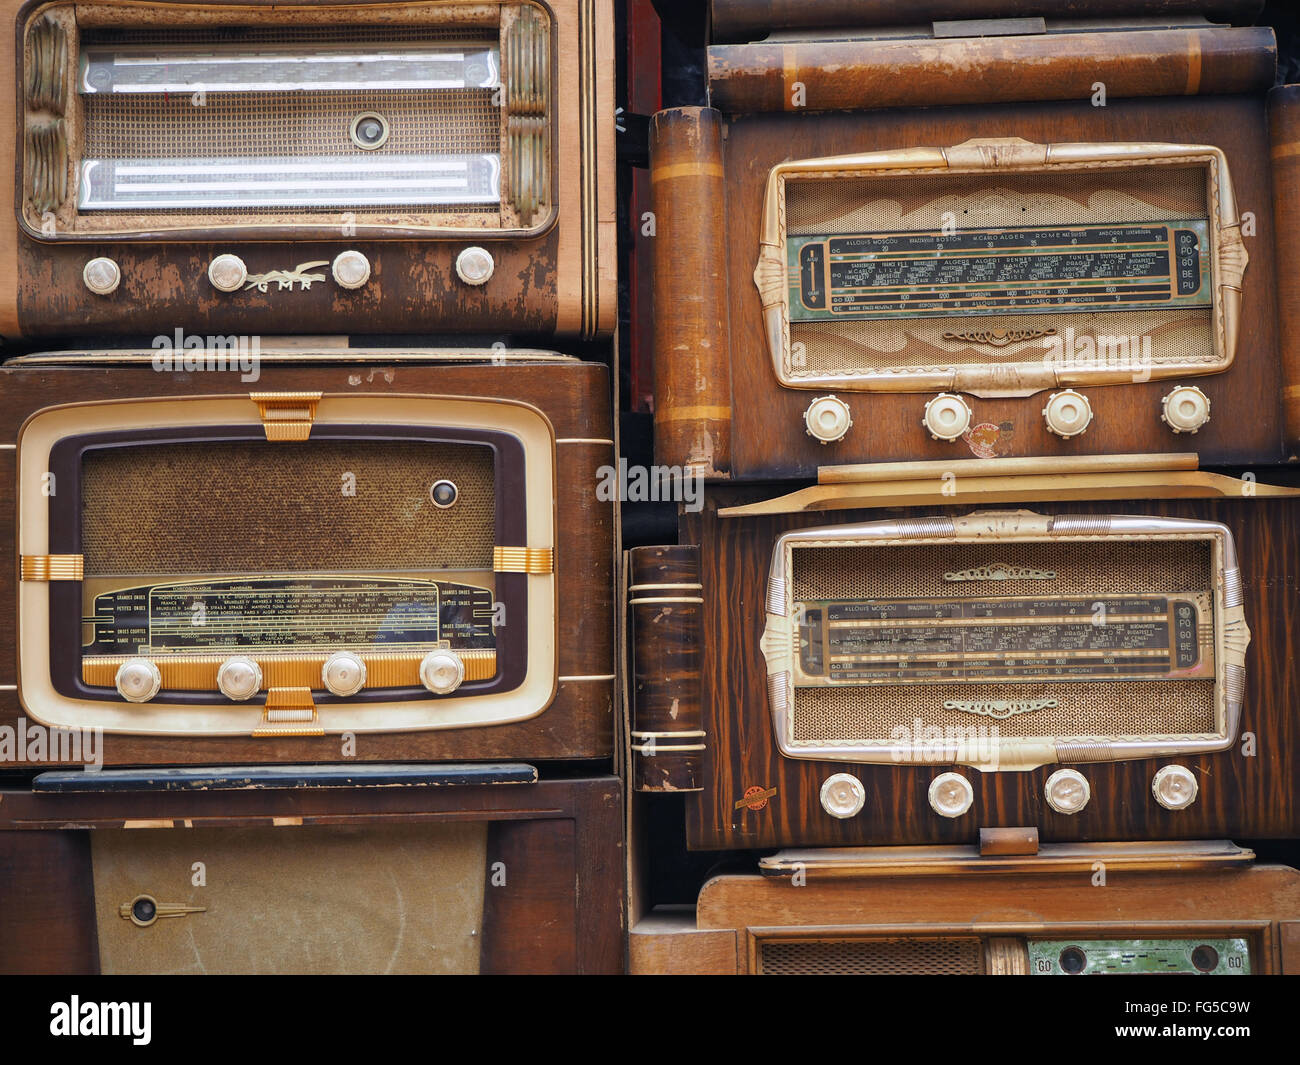 Full Frame Shot Of Retro Styled Radios - Stock Image